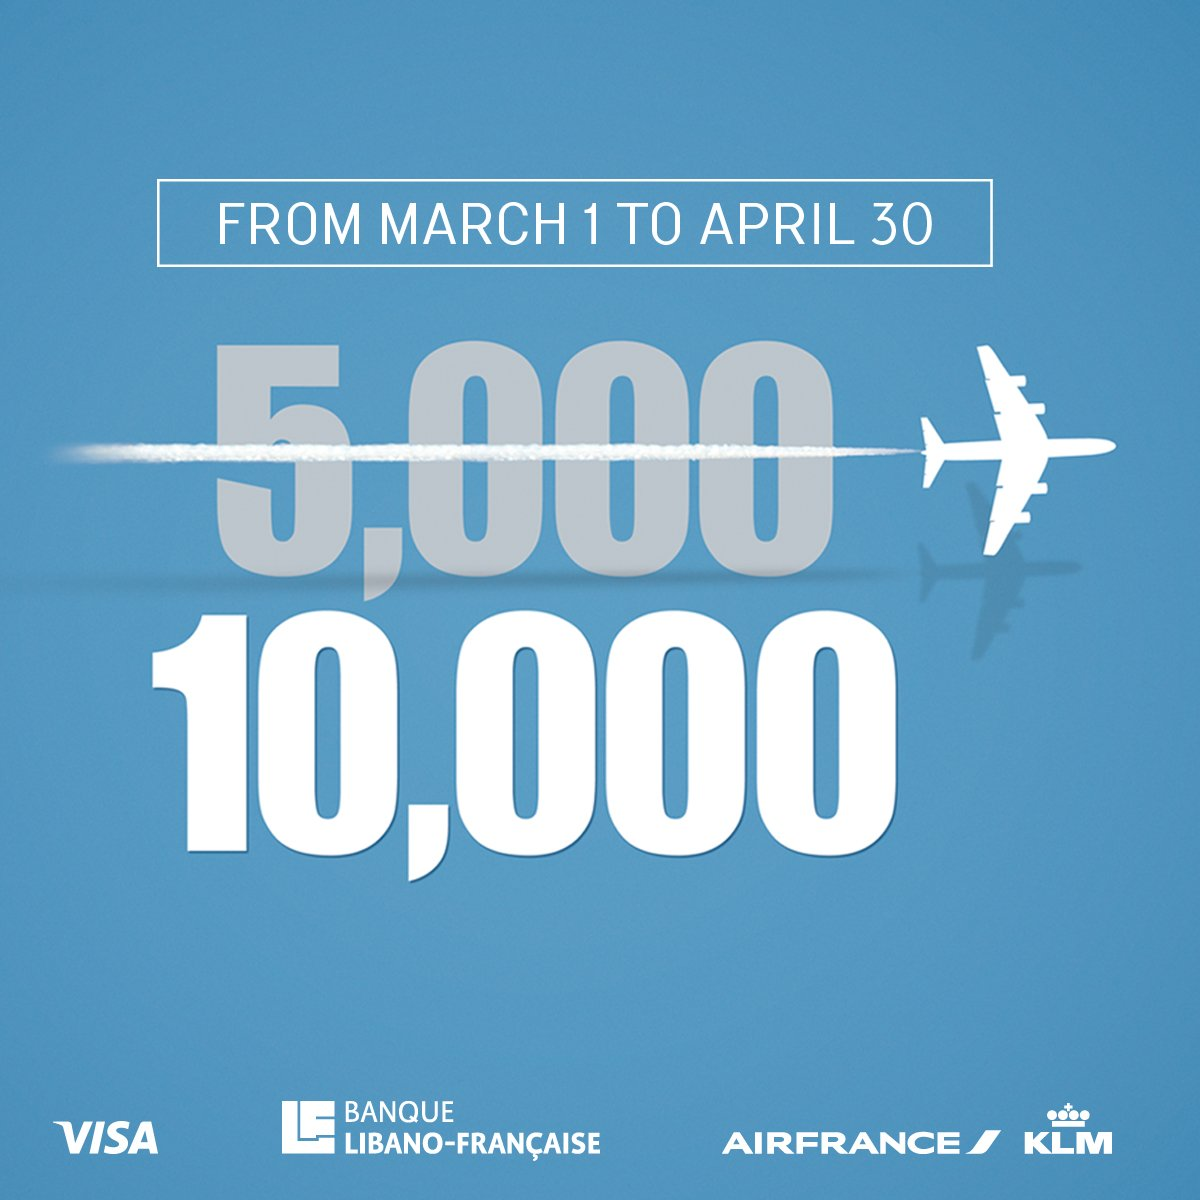 Win more Flying Blue Miles with AIR FRANCE KLM - BANQUE LIBANO-FRANÇAISE #Visa card and a #trip to #Paris  https://www. eblf.com/mobile/en/news details.aspx?pageid=2161&amp;aid=6279 &nbsp; …  #AirFrance<br>http://pic.twitter.com/xr56vHj5wE